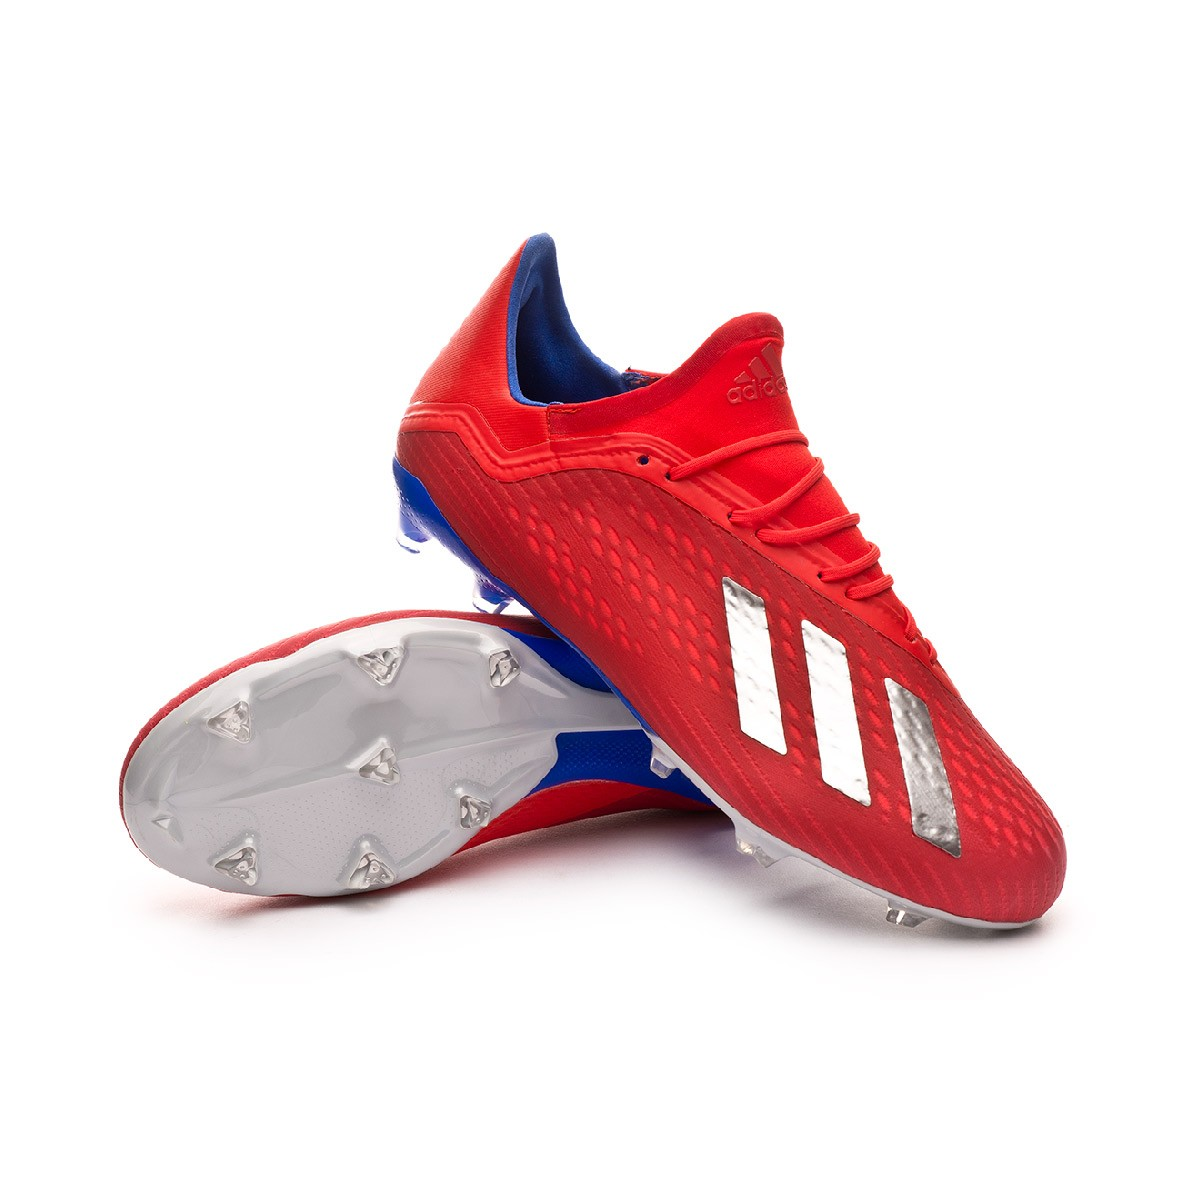 superior quality new release detailing adidas X 18.2 FG Football Boots